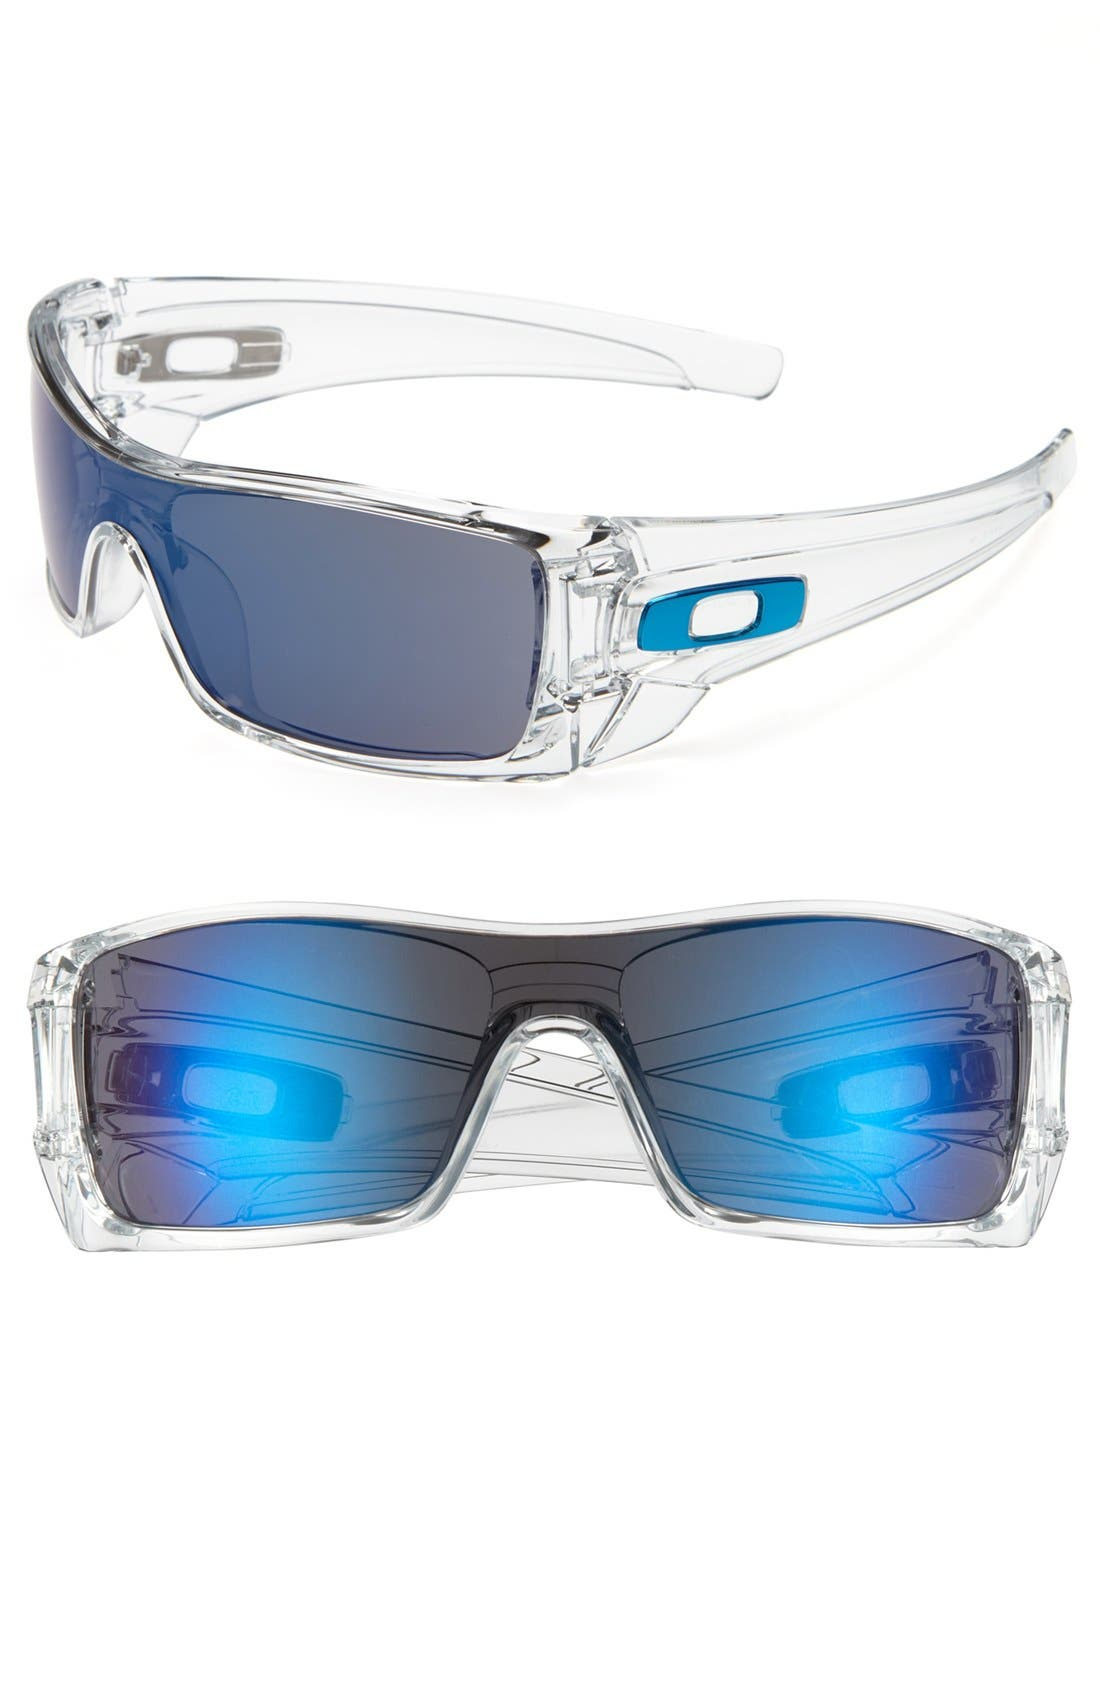 'Batwolf' Sunglasses,                             Main thumbnail 1, color,                             CLEAR